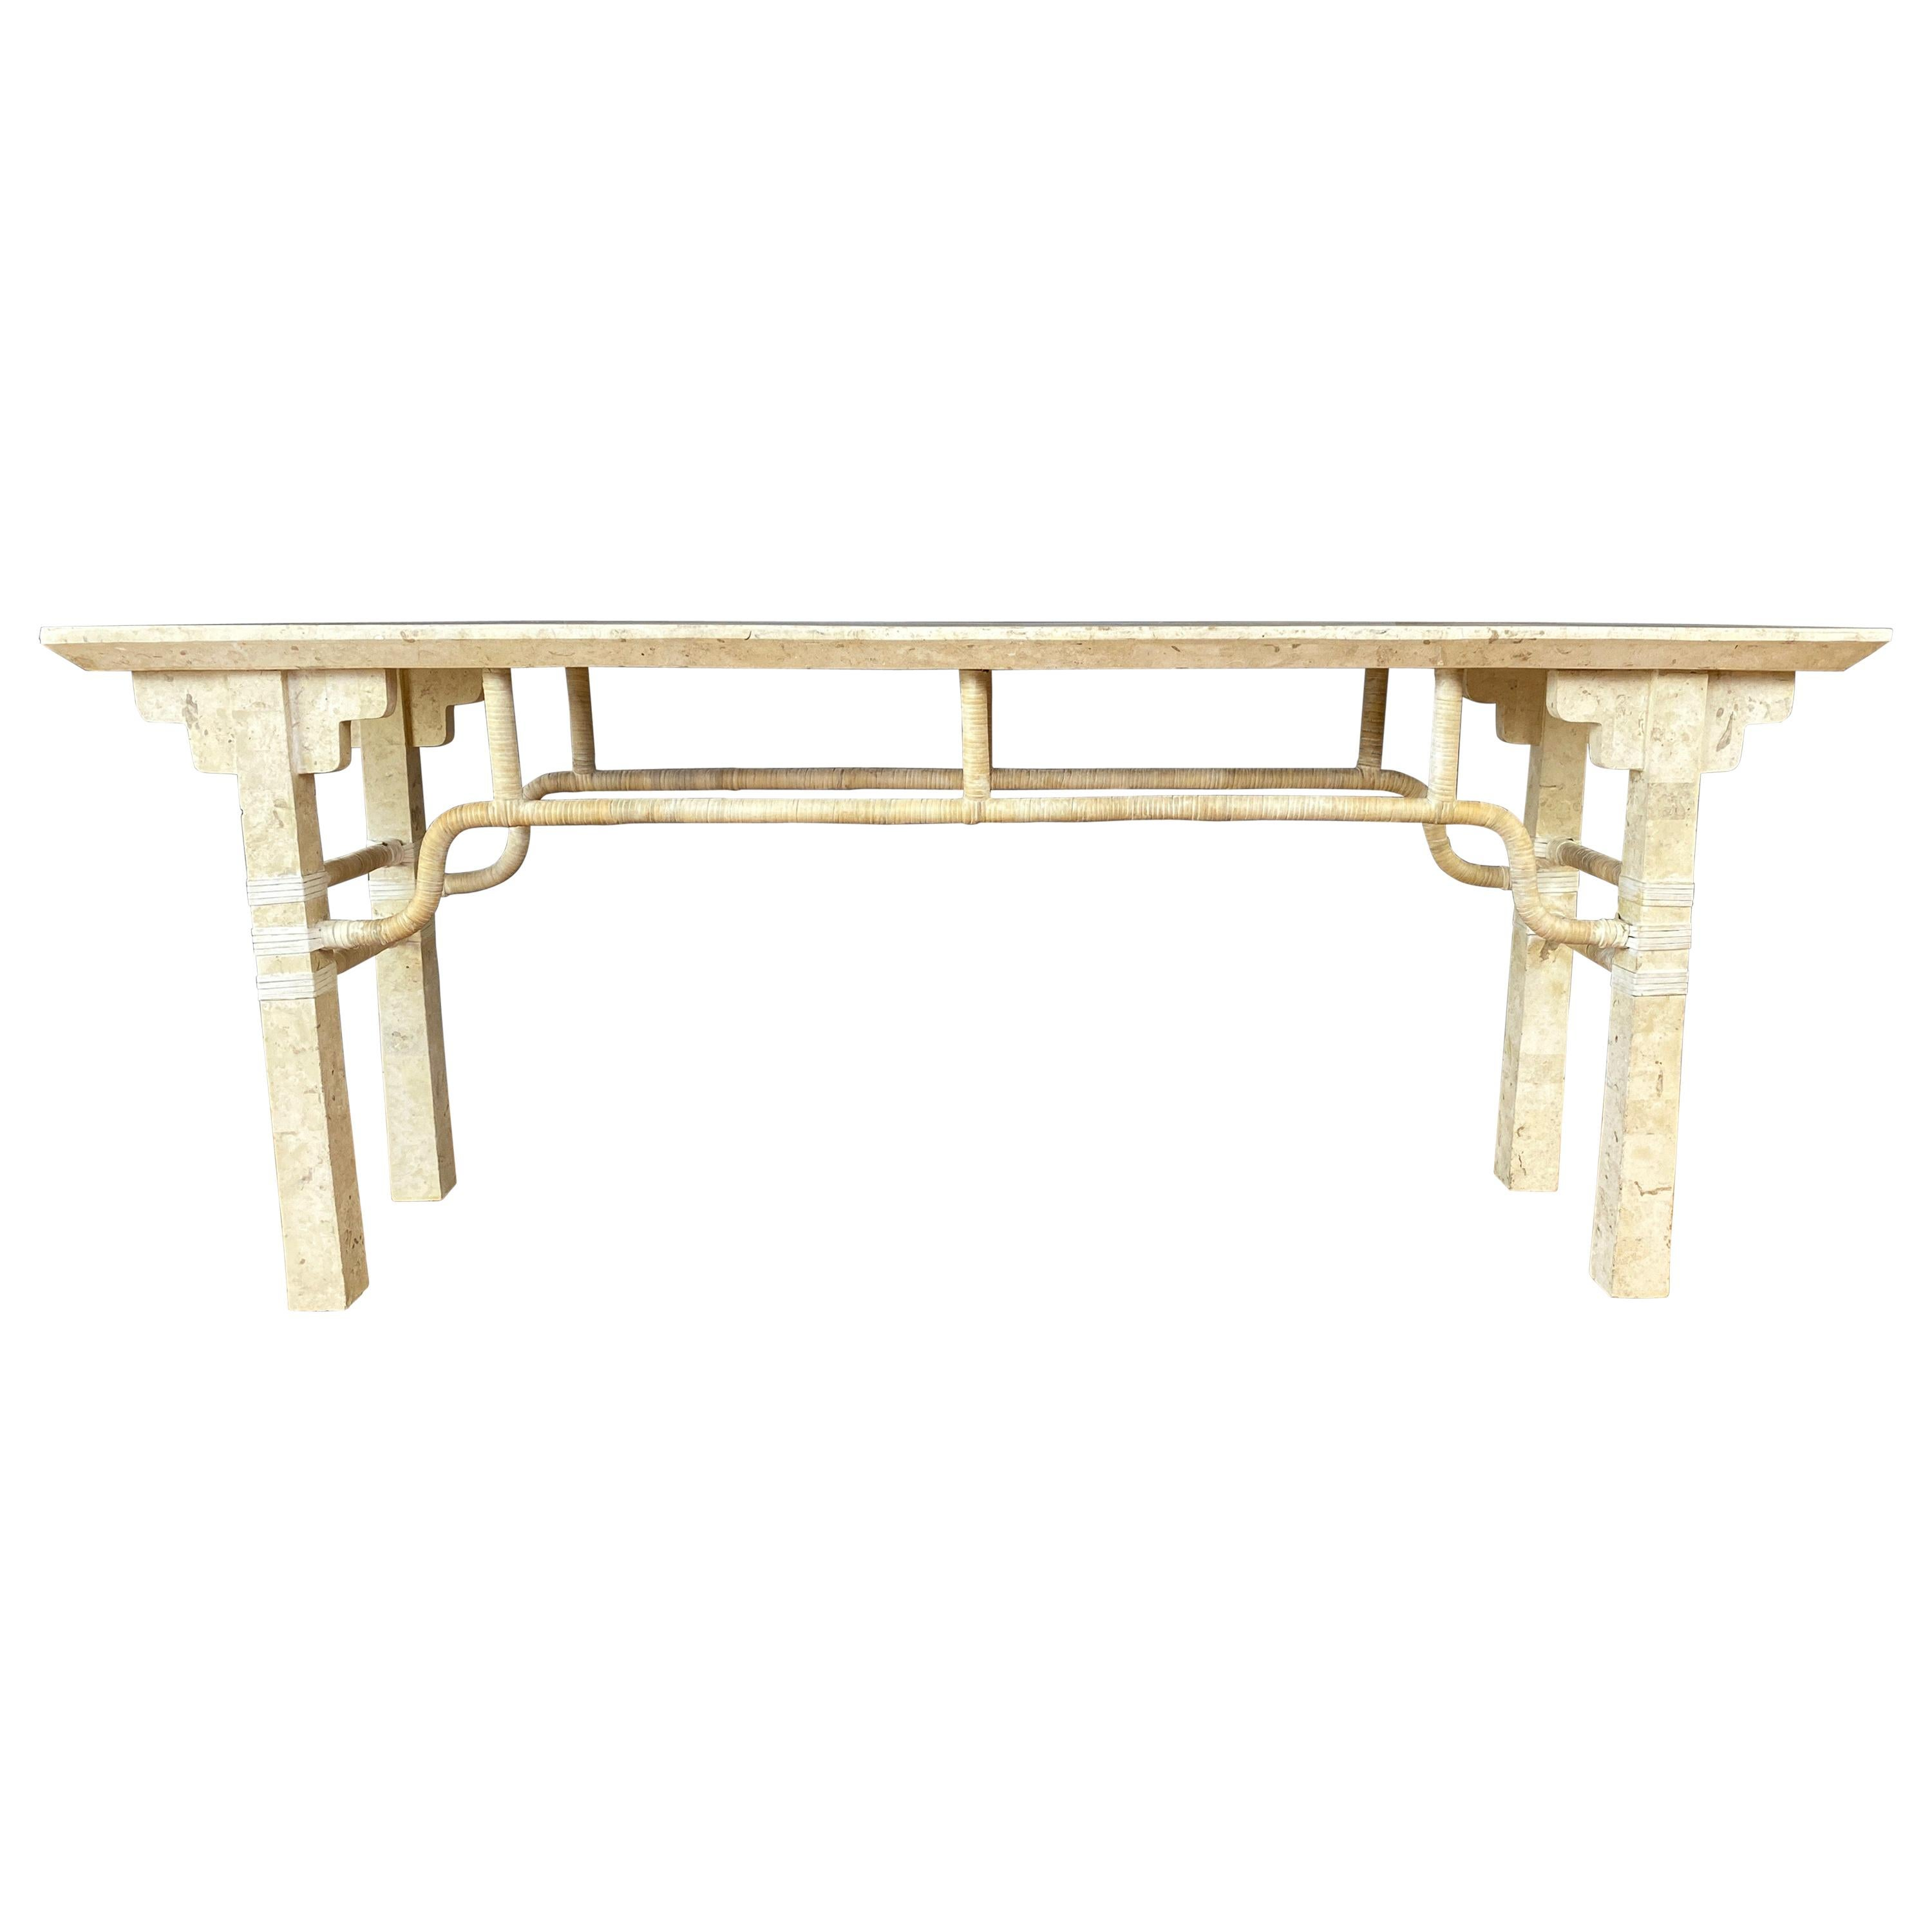 Maitland-Smith-Style Tessellated Fossil Stone and Rattan Console Table, 1980s